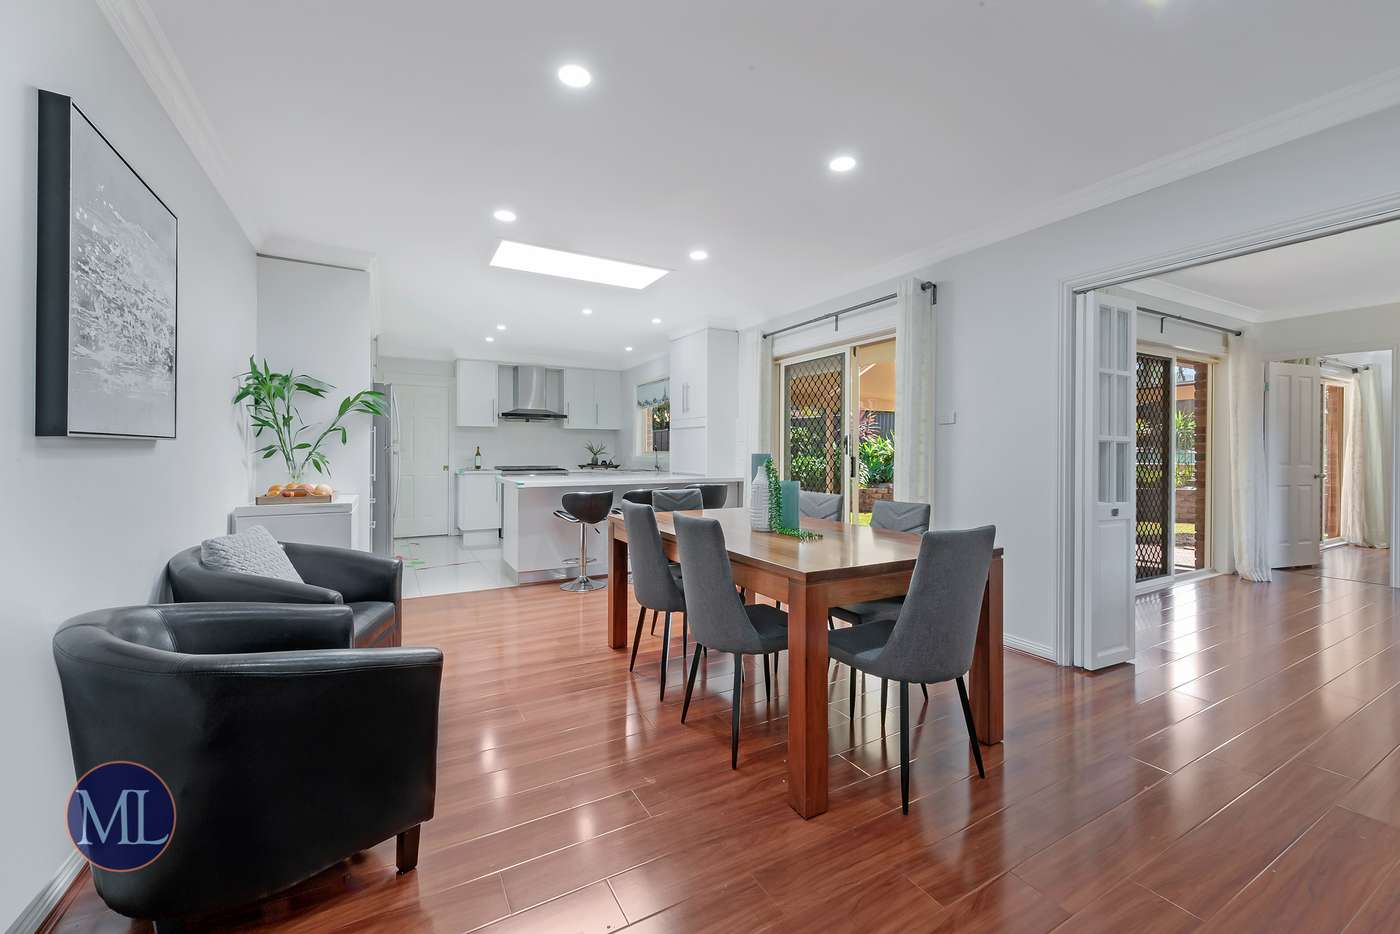 Fifth view of Homely house listing, 12 Coomalie Avenue, Castle Hill NSW 2154